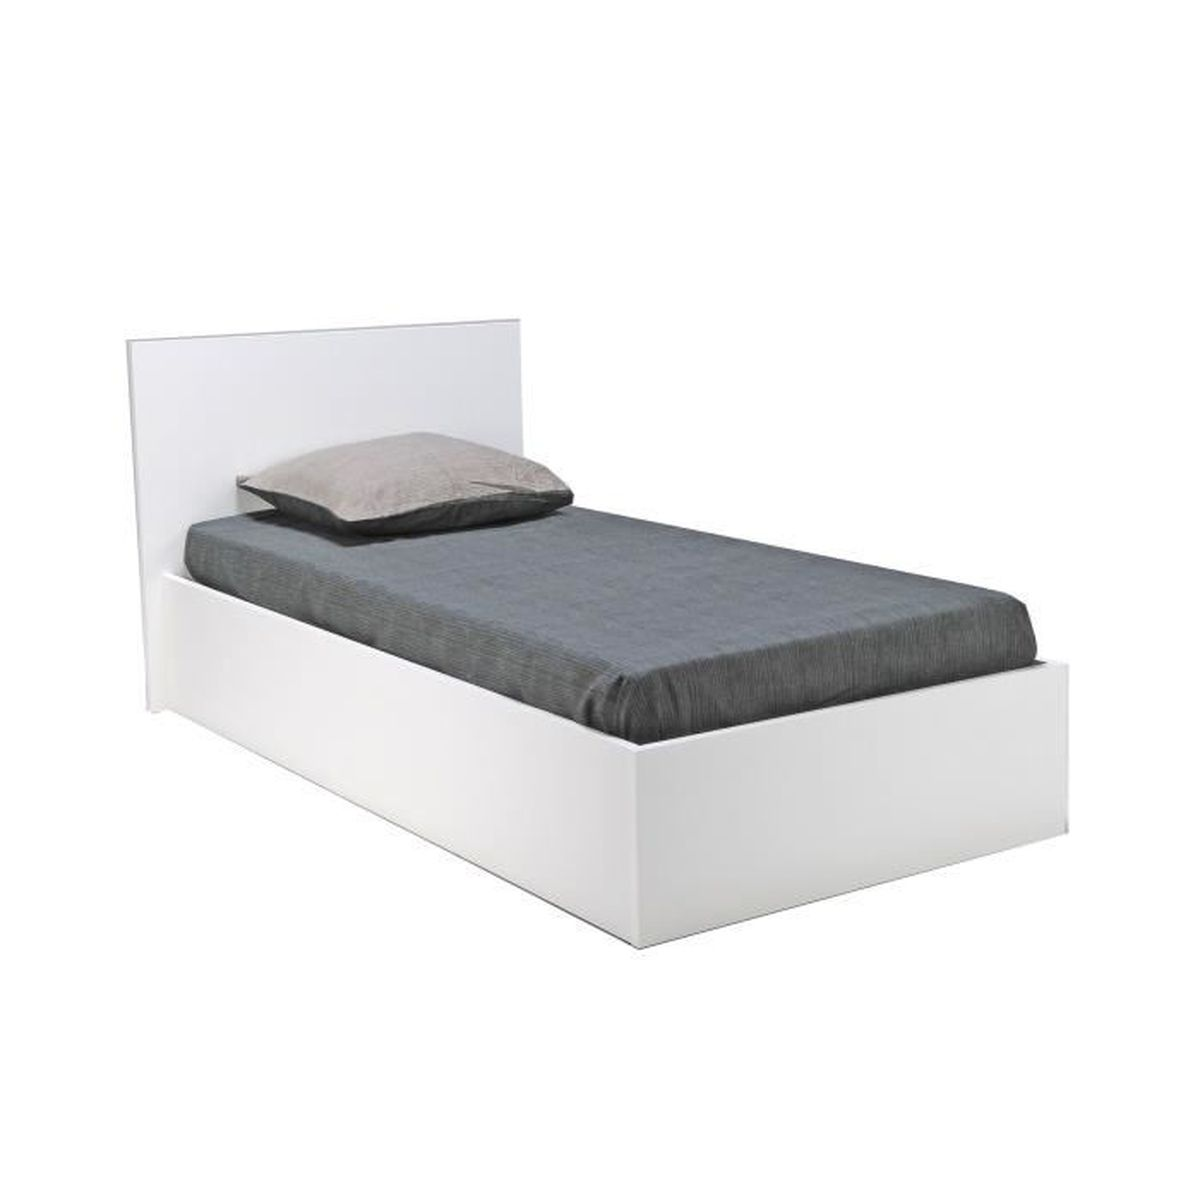 lit 180x200 avec sommier et matelas lit 2 personnes pas. Black Bedroom Furniture Sets. Home Design Ideas